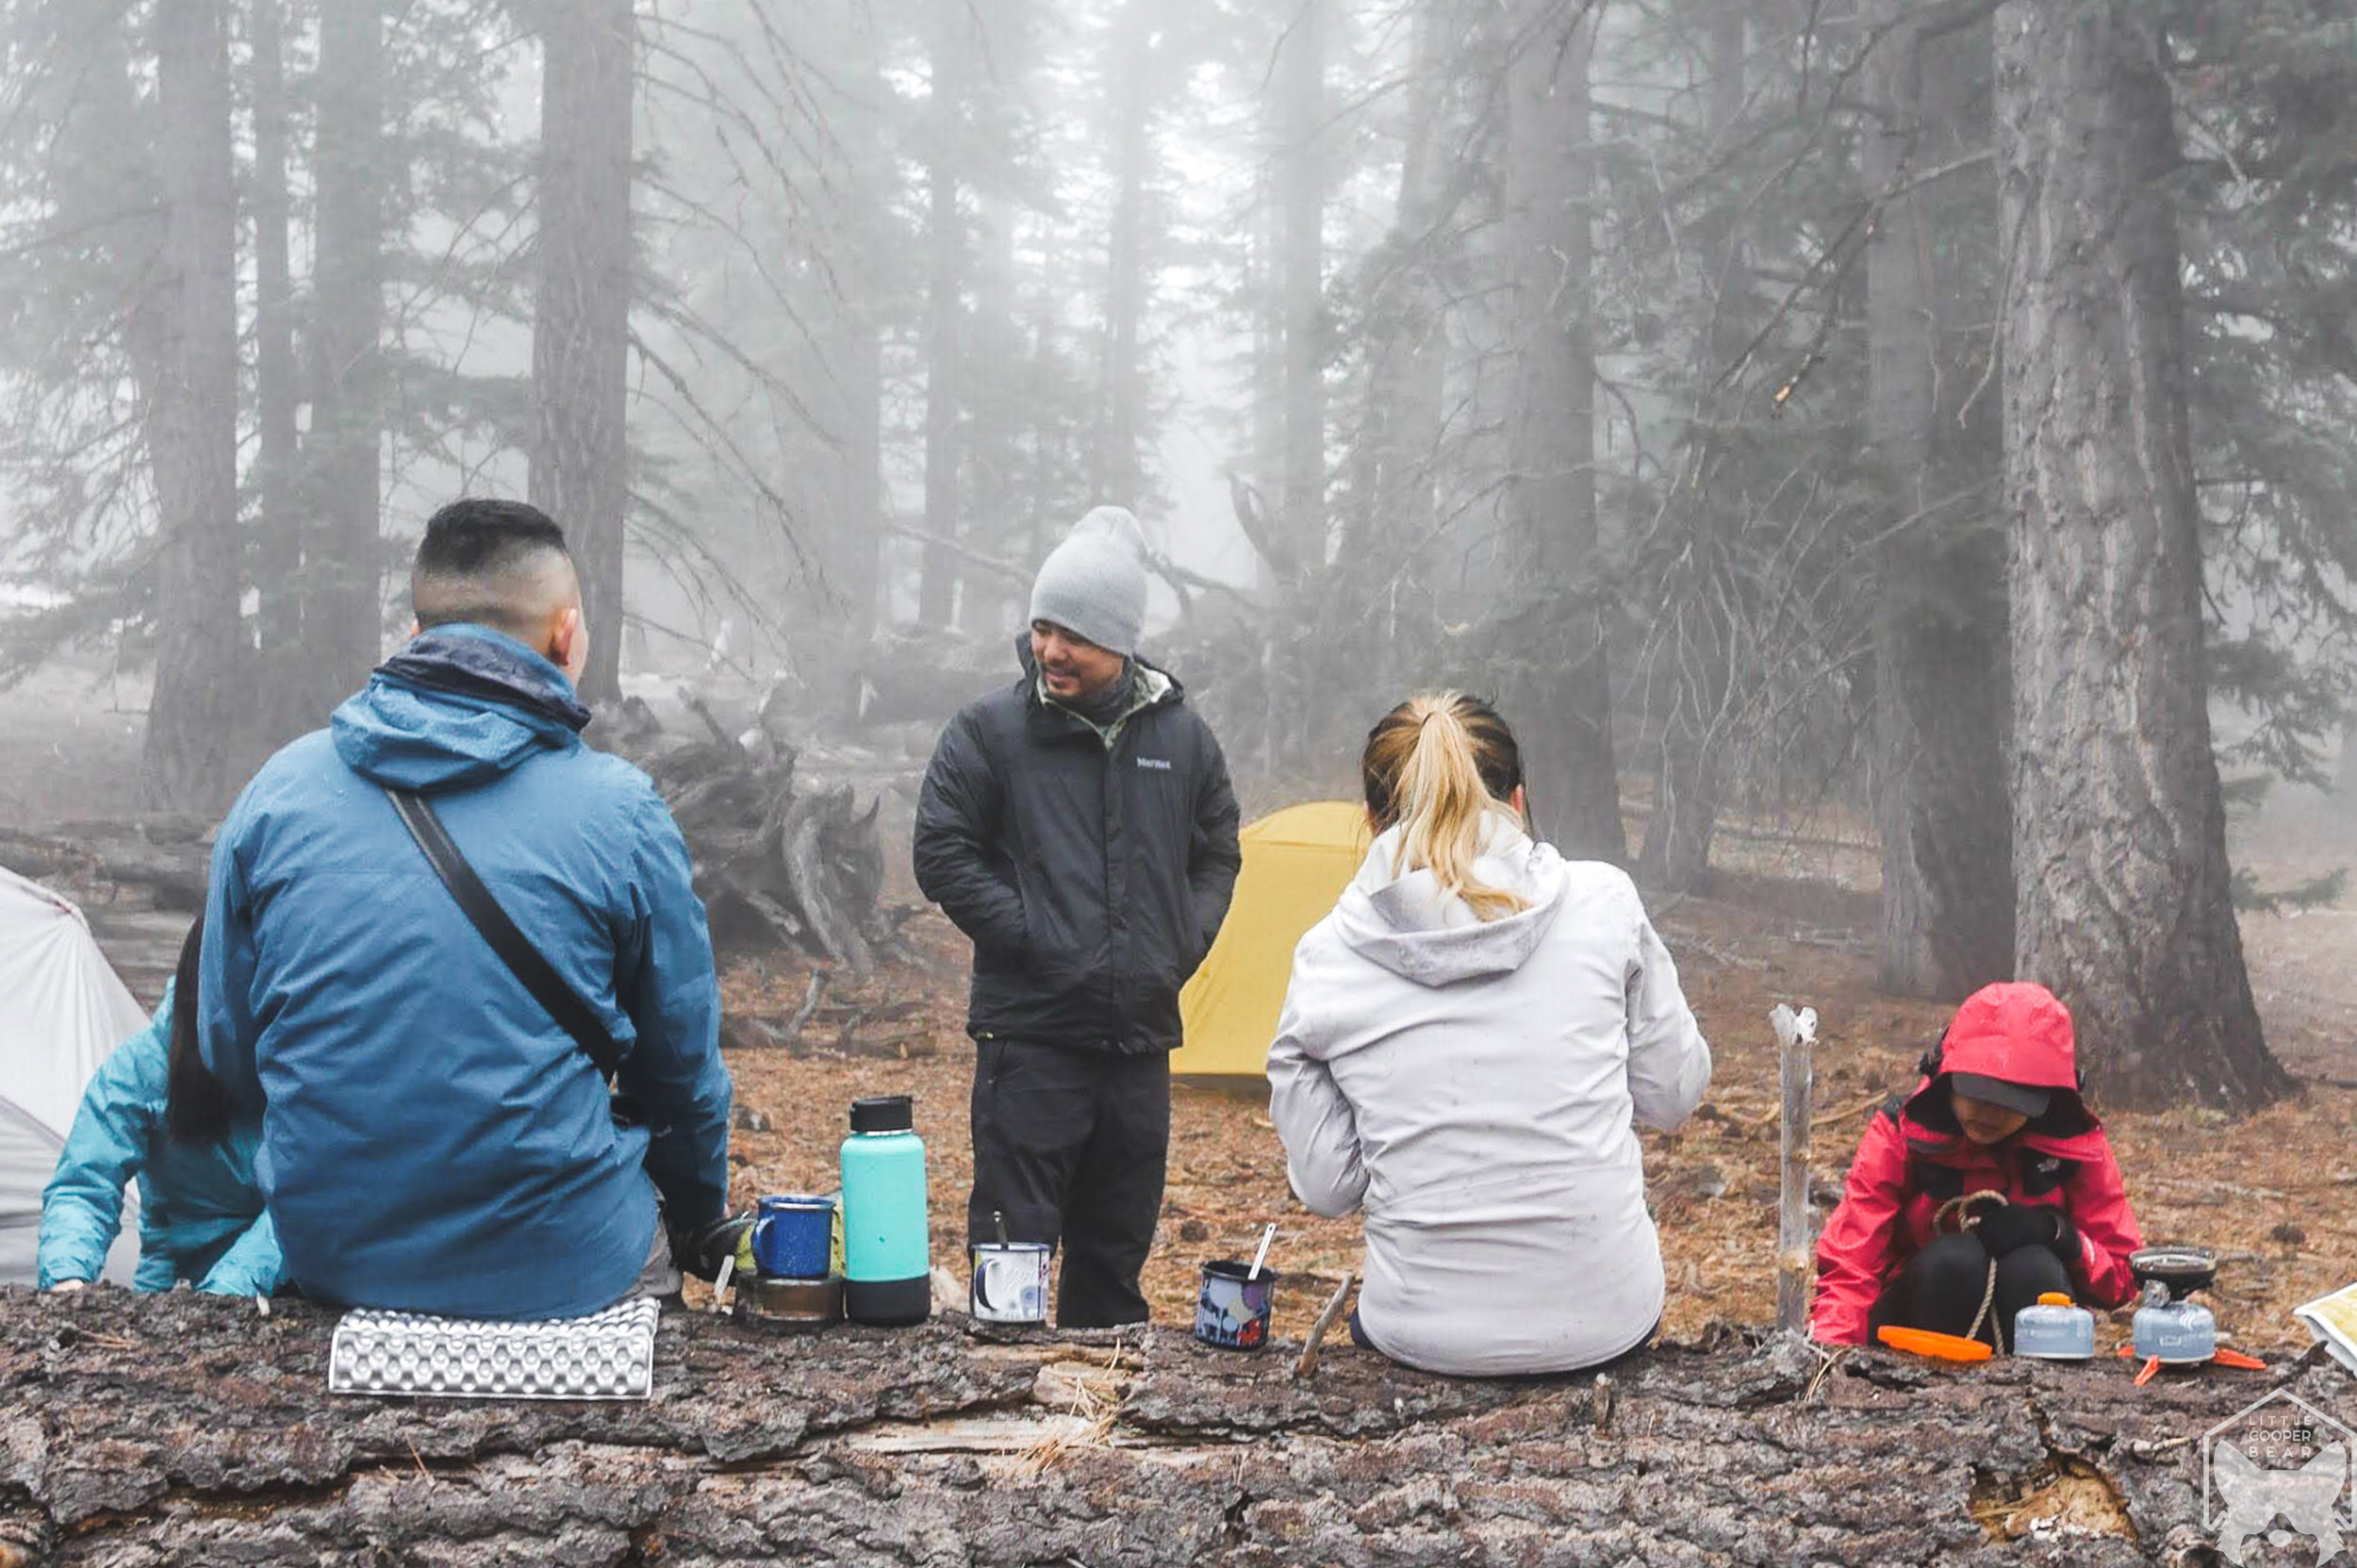 Ate our camp dinner in the foggy wilderness.